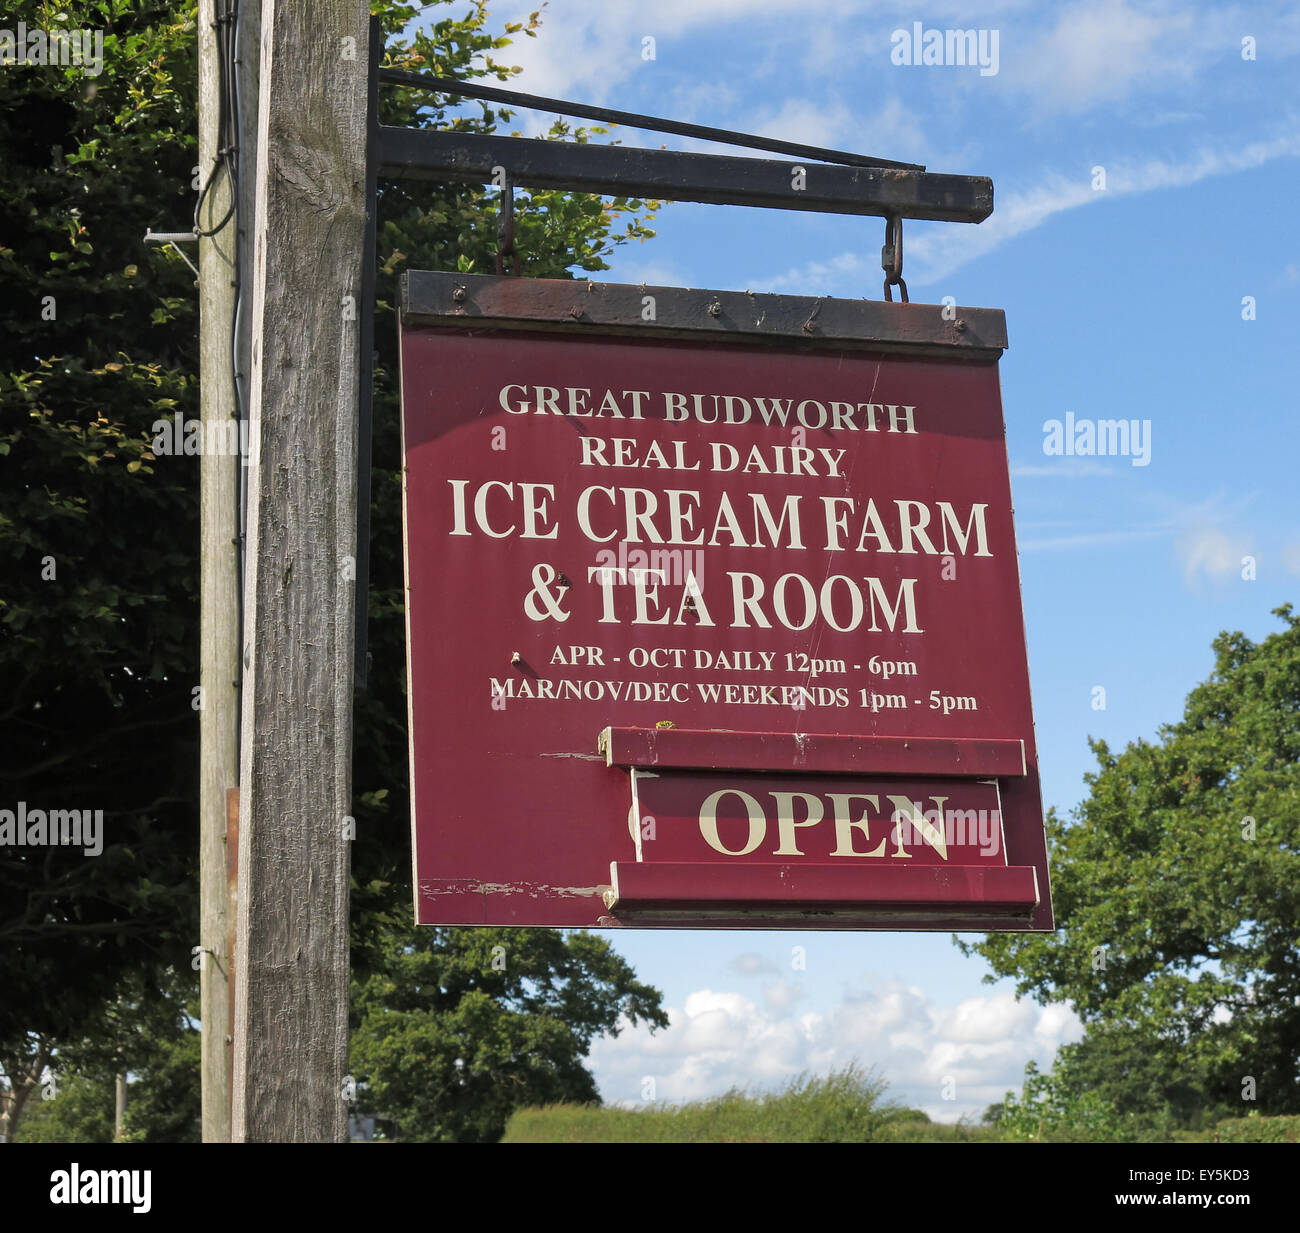 Cheshire Ice Cream Farm and Tea Room Open Sign Stock Photo